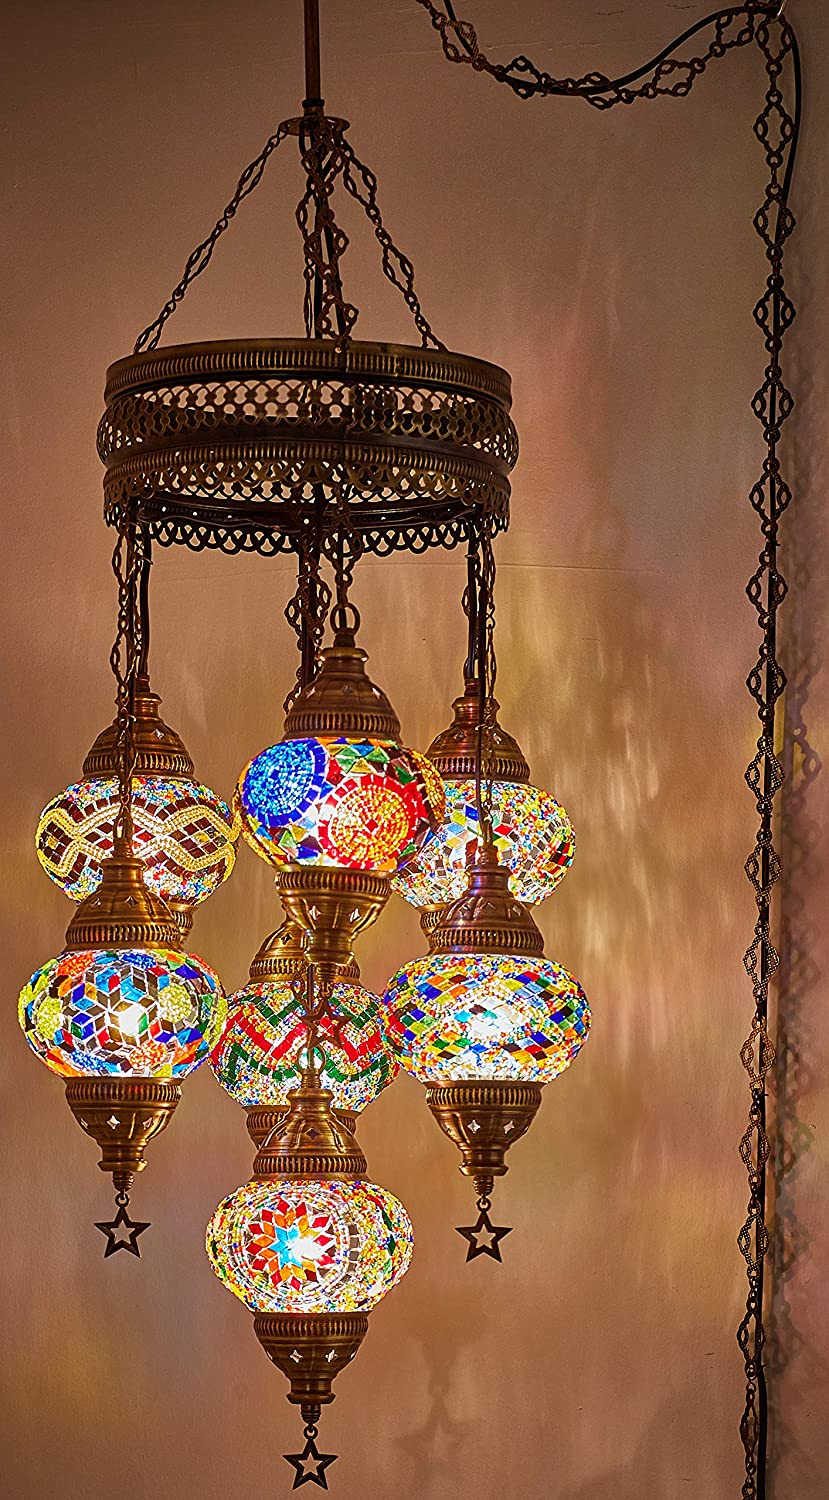 Choose from 35 Designs Turkish Moroccan Mosaic Glass Chandelier Lights Hanging Ceiling Lamps